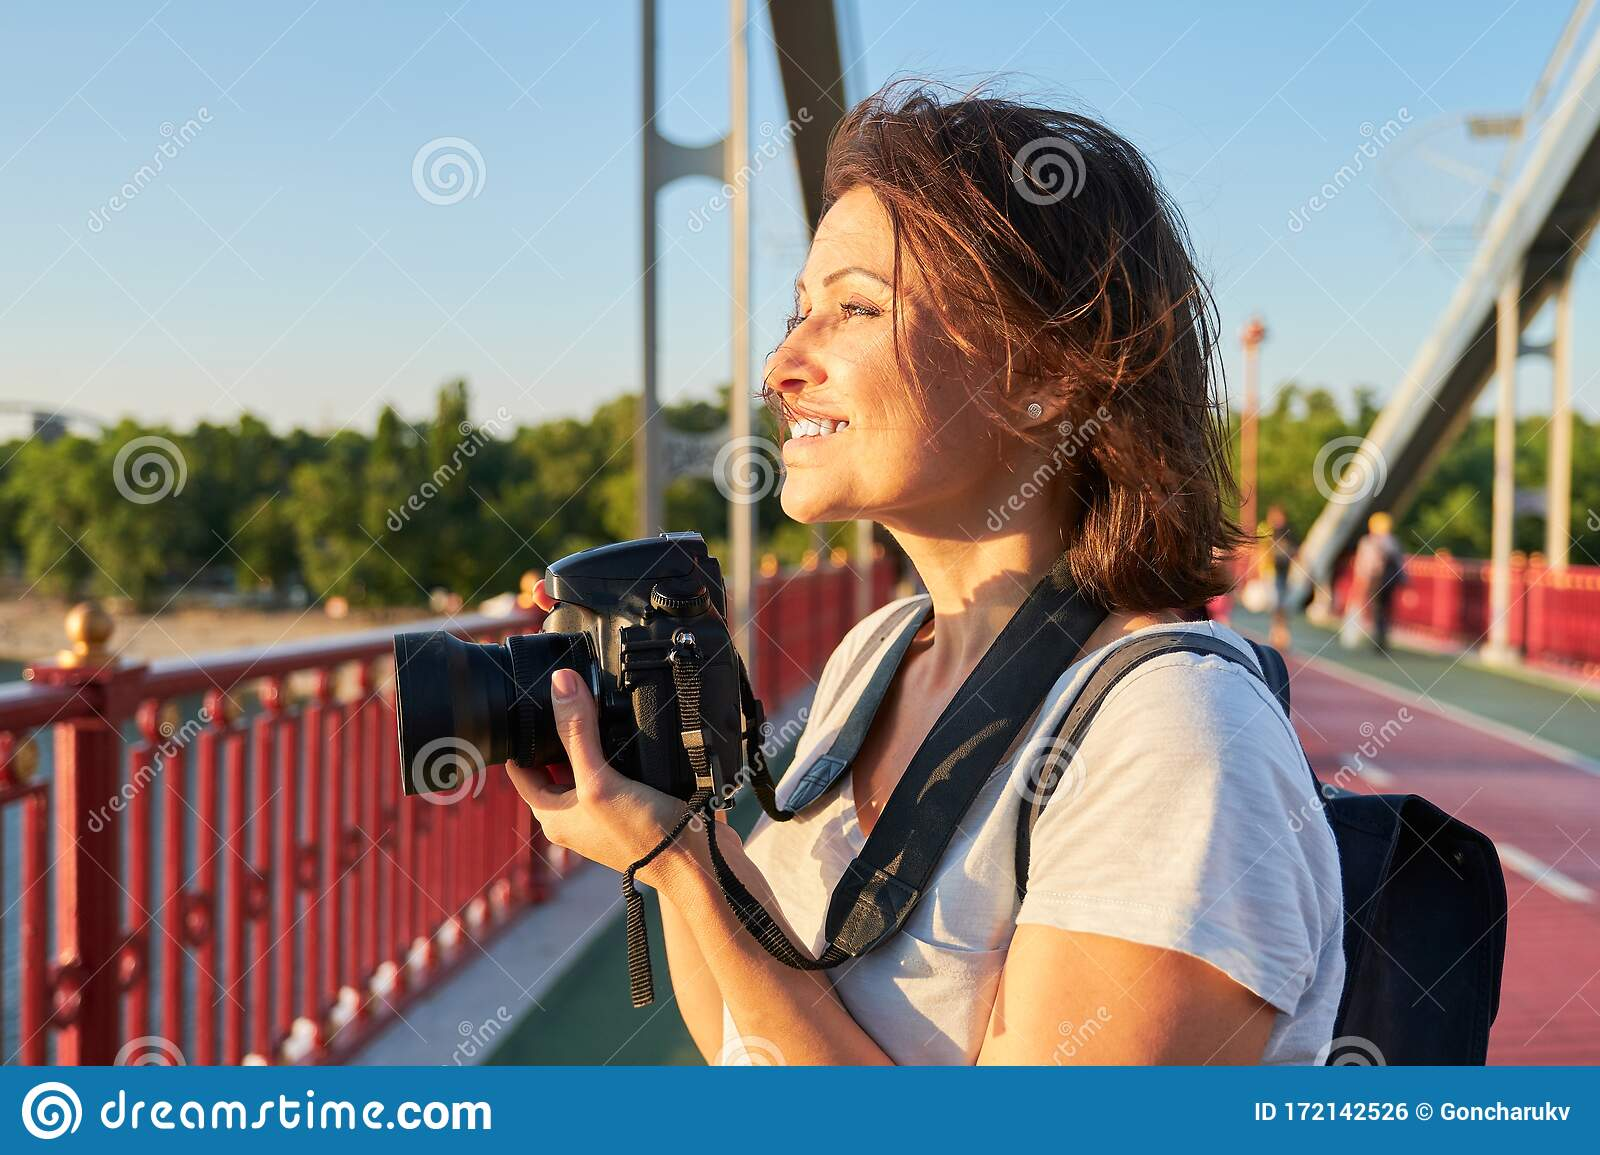 Mature Woman Photographer With Camera Taking Photo Picture Stock